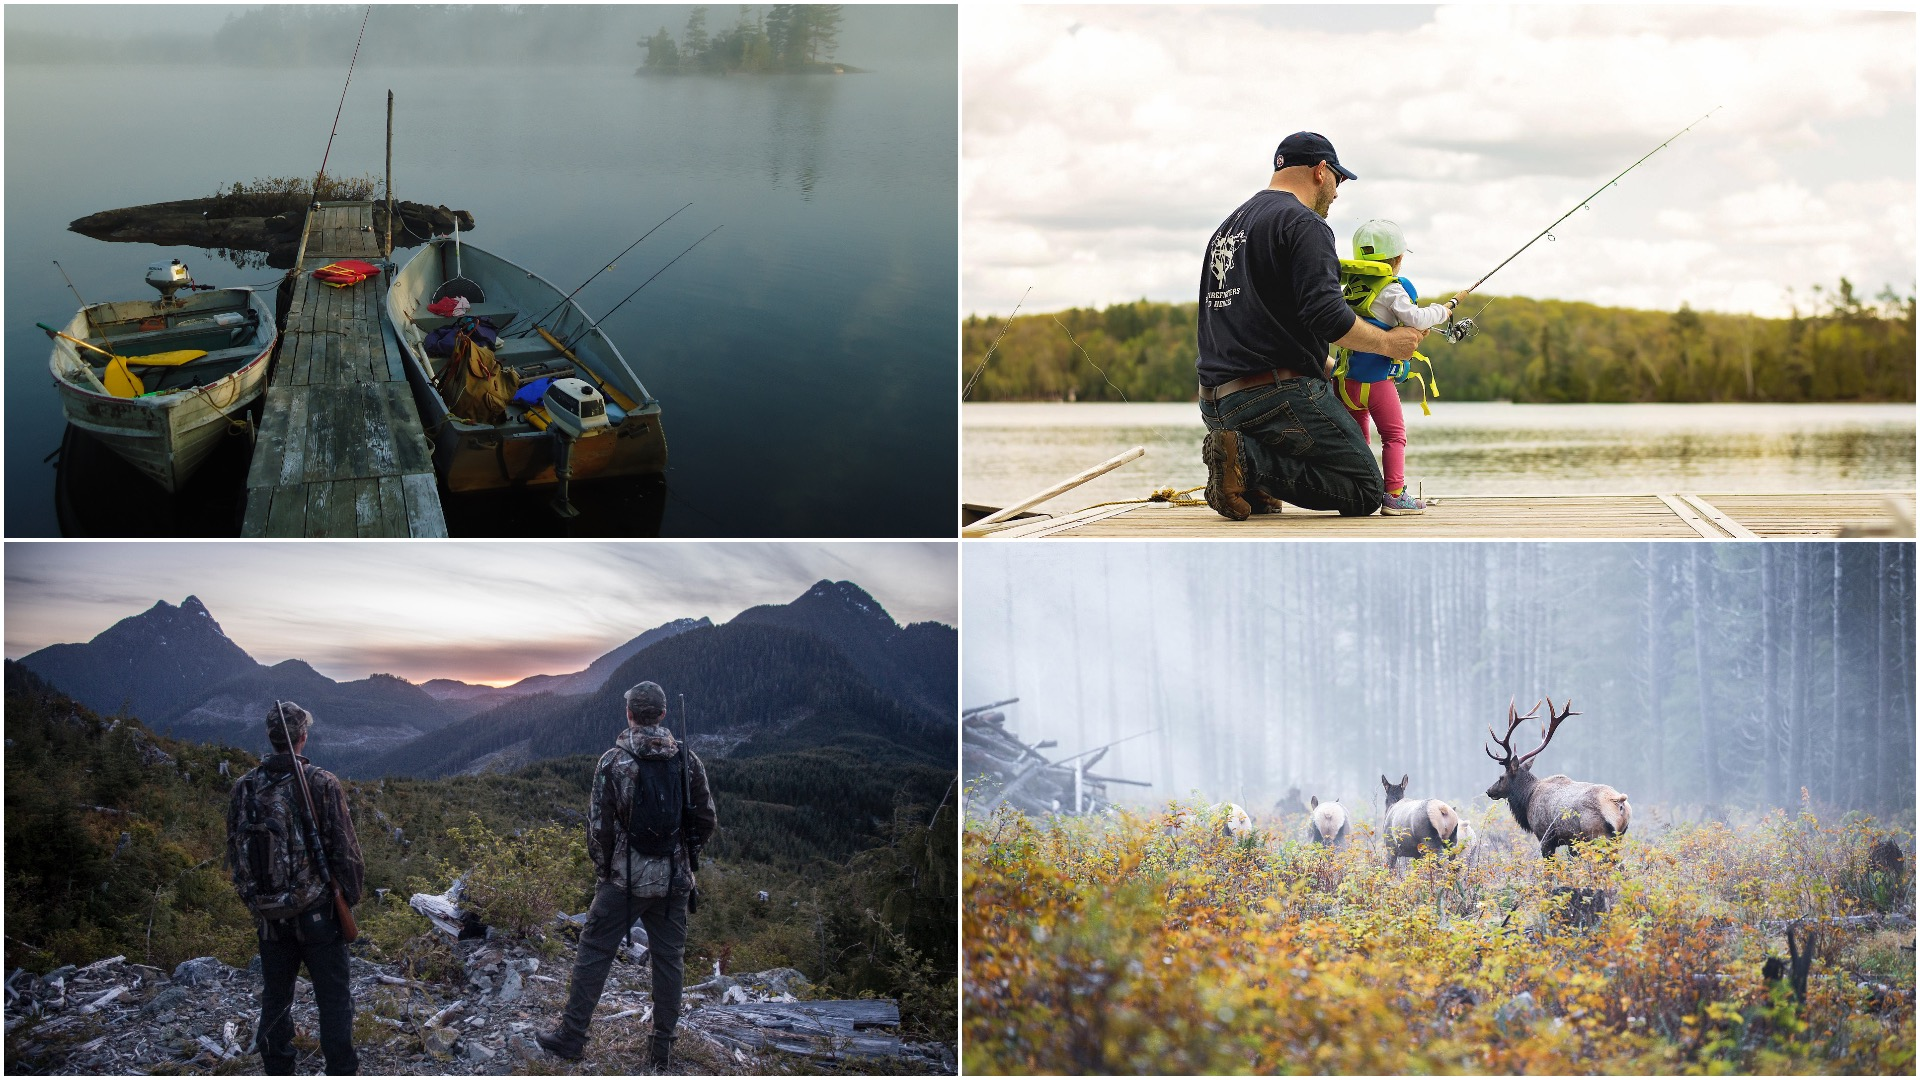 Enter Outdoor Canada's 8th annual photo contest!